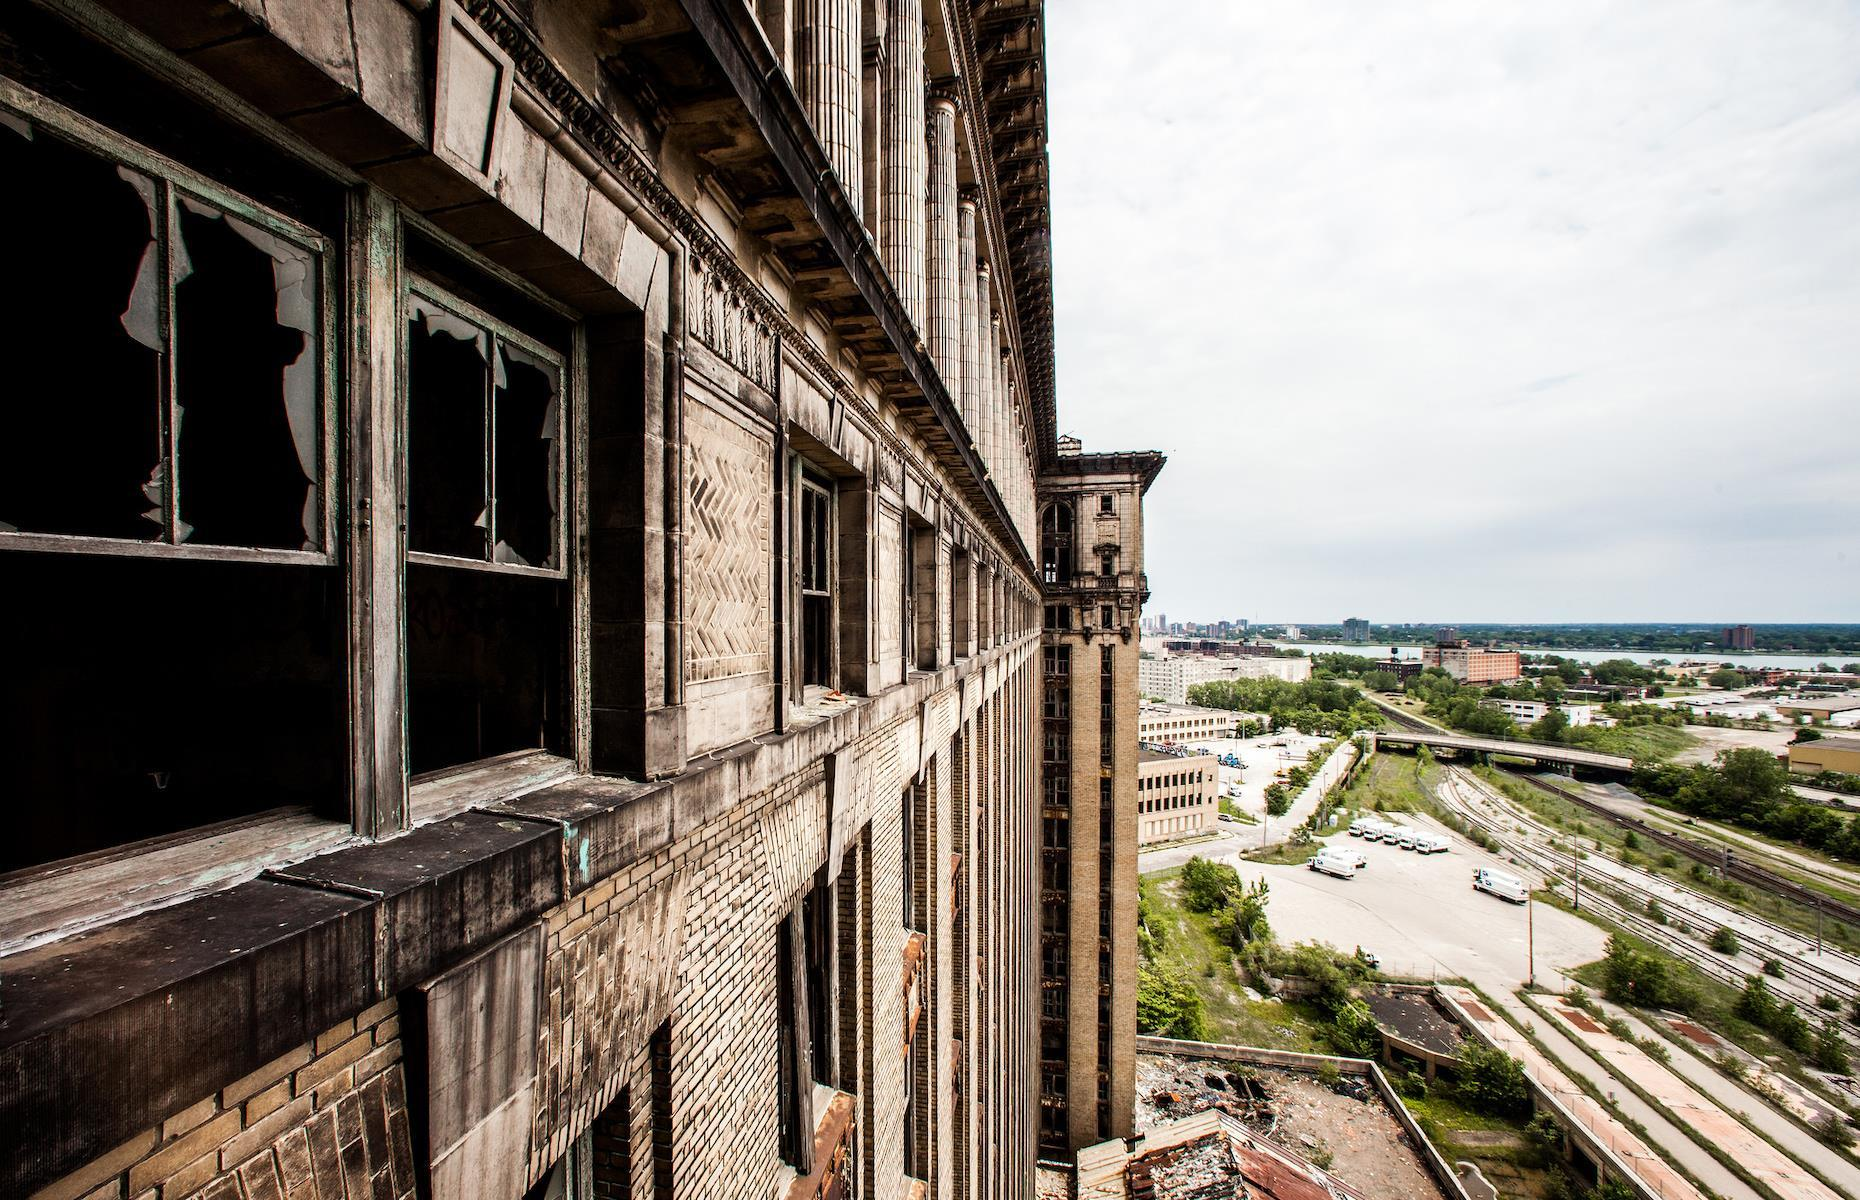 Slide 4 of 33: After its closure, the building was heavily vandalized and began to crumble away over the years. However, echoes of its grand interior still remain. Ford has announced that its mixed-use redevelopment plans will include restoration of the former station's grand lobby for public use. Take a look at these incredible images that capture the history of train travel.